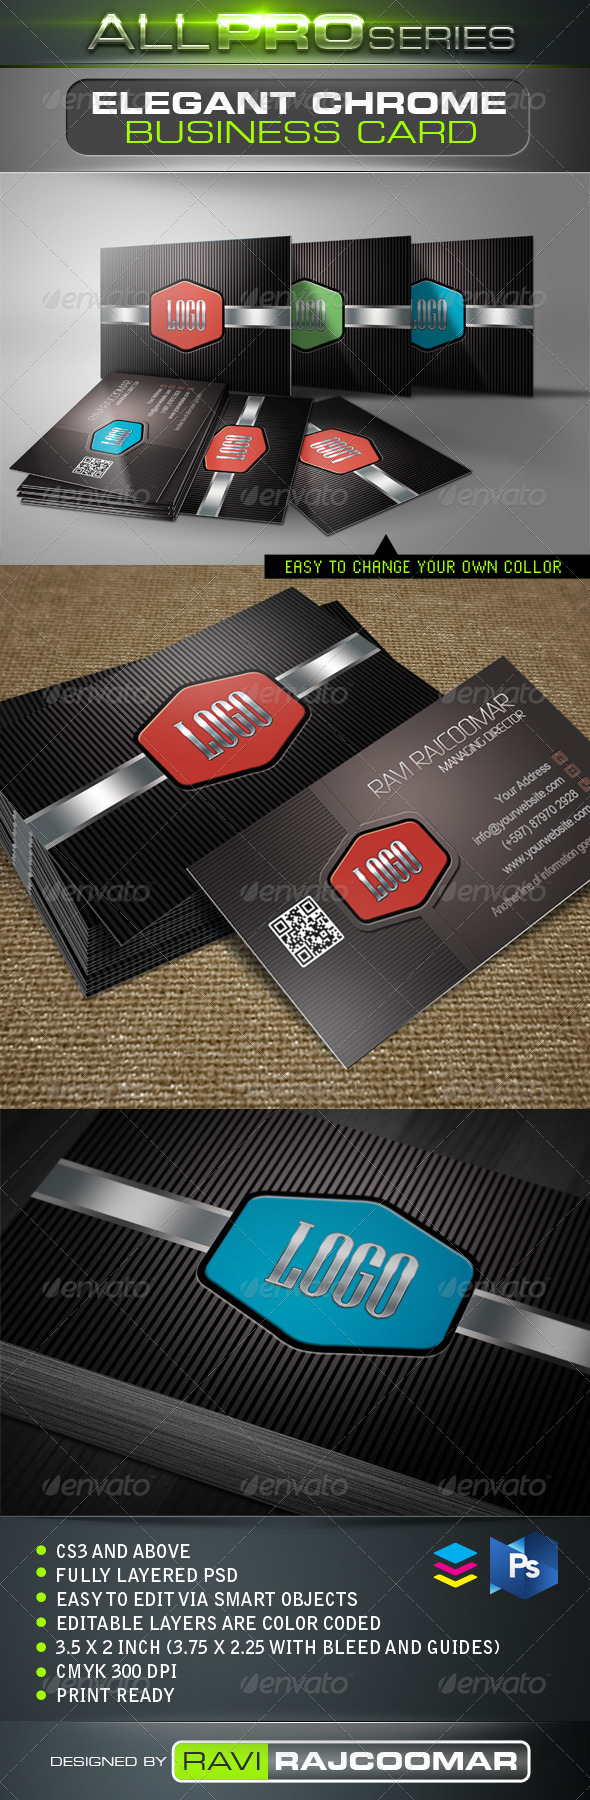 Elegant Chrome Business Card - Business Cards Print Templates